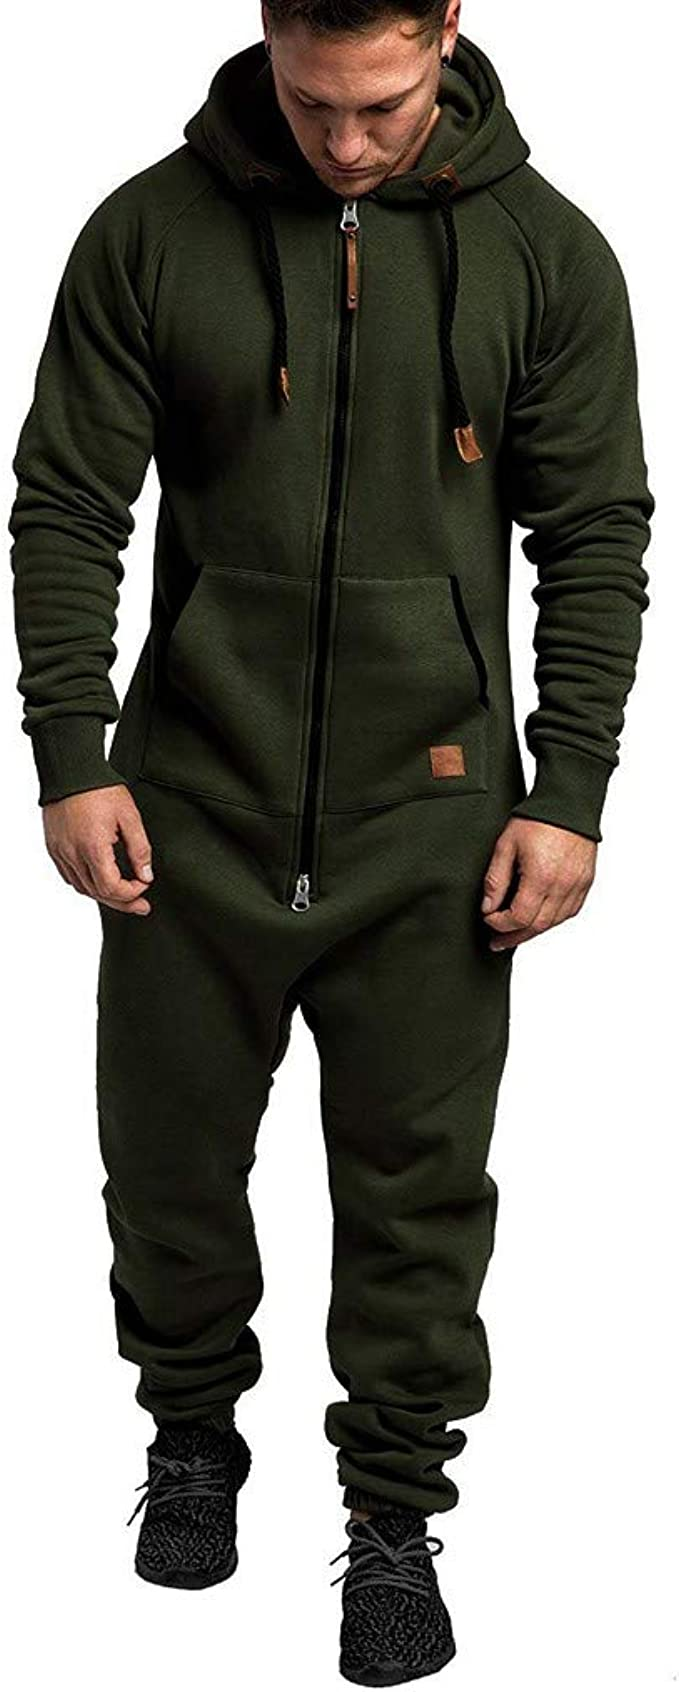 NEW MENS HOODED SUIT ALL IN ONE JUMPSUIT ONE PIECE SUIT M L XL XXL